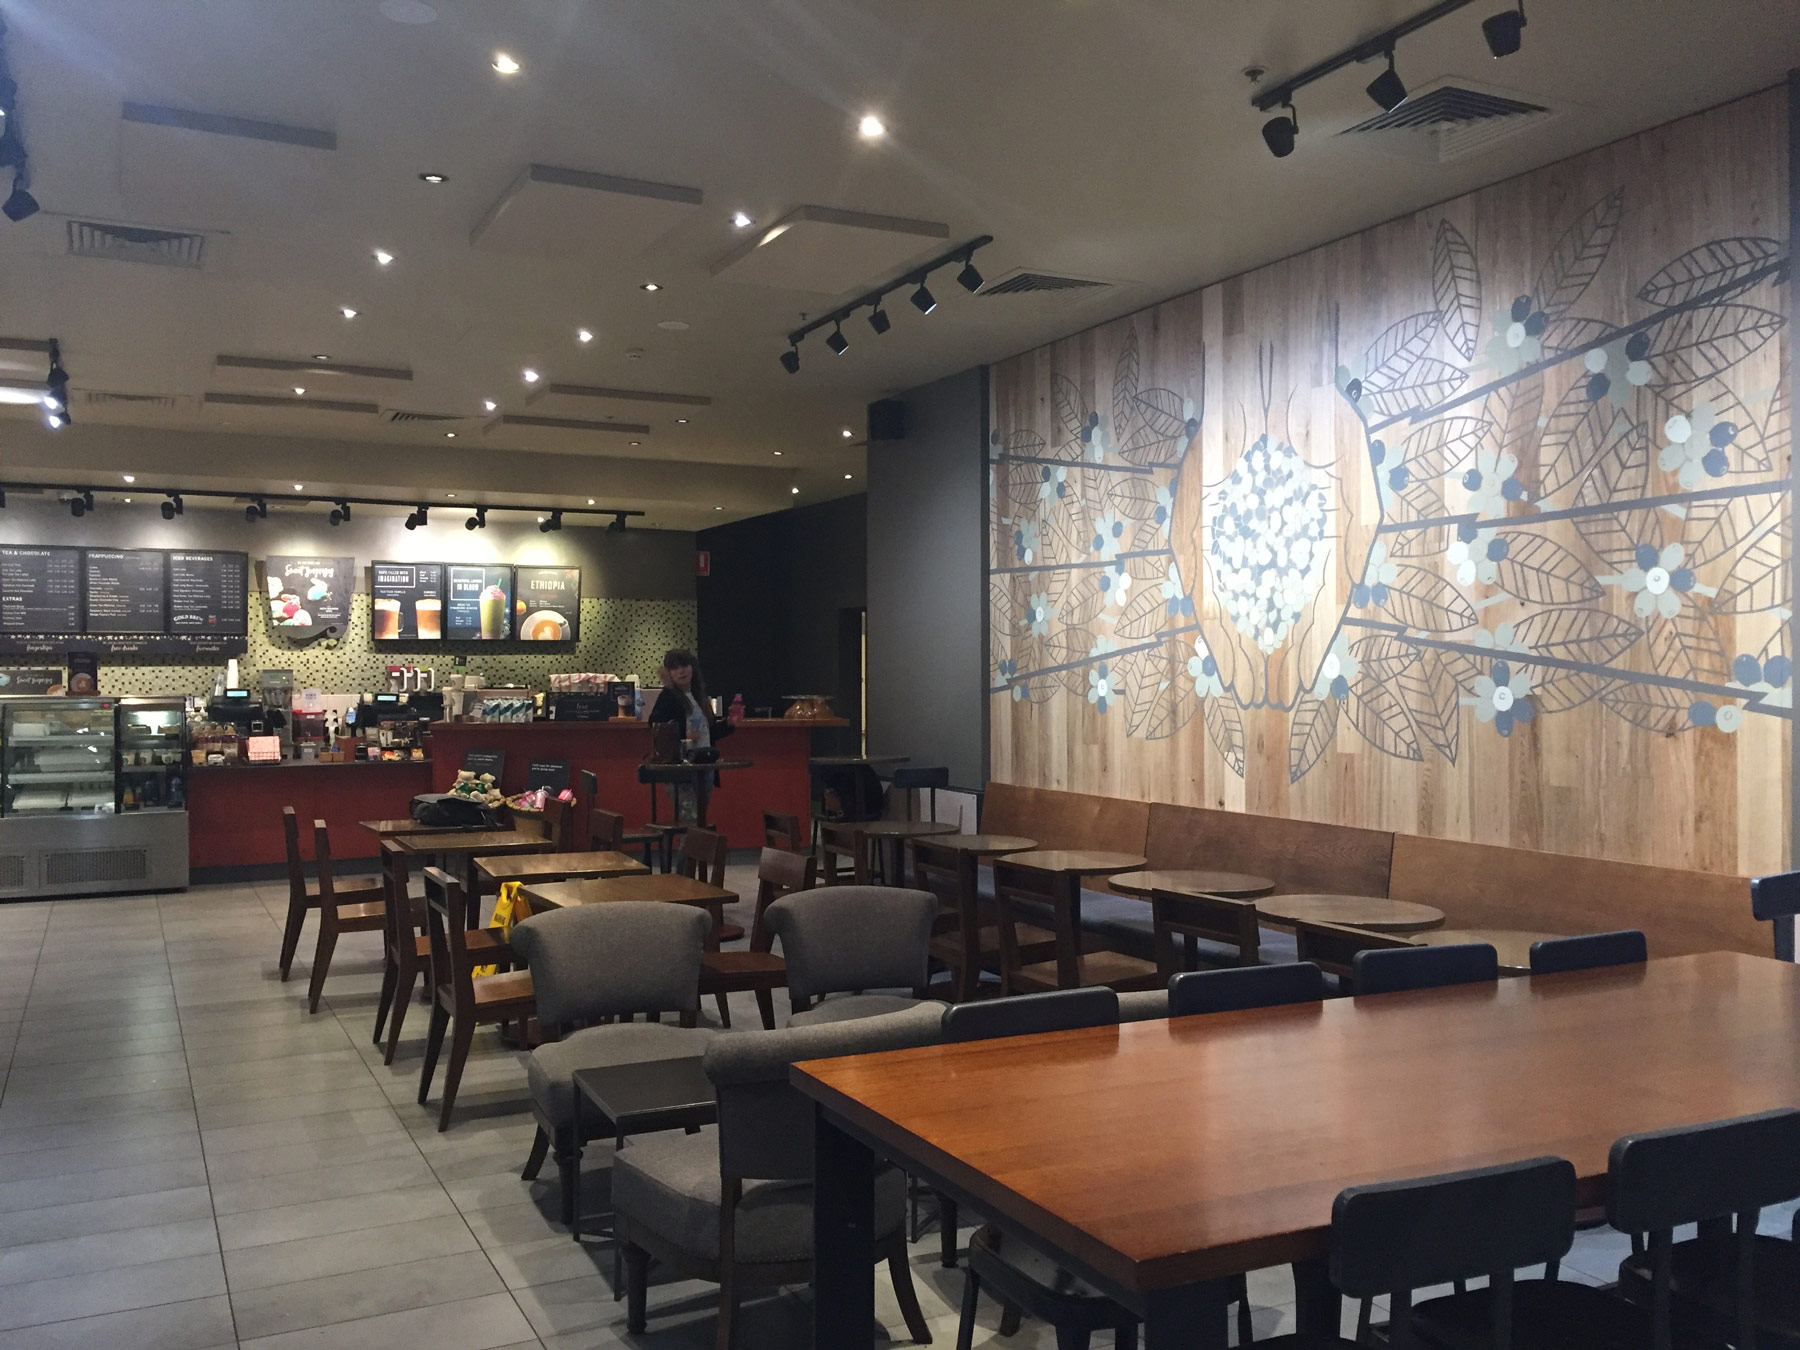 the-art-of-wall-starbucks-george-st-mural-30-small